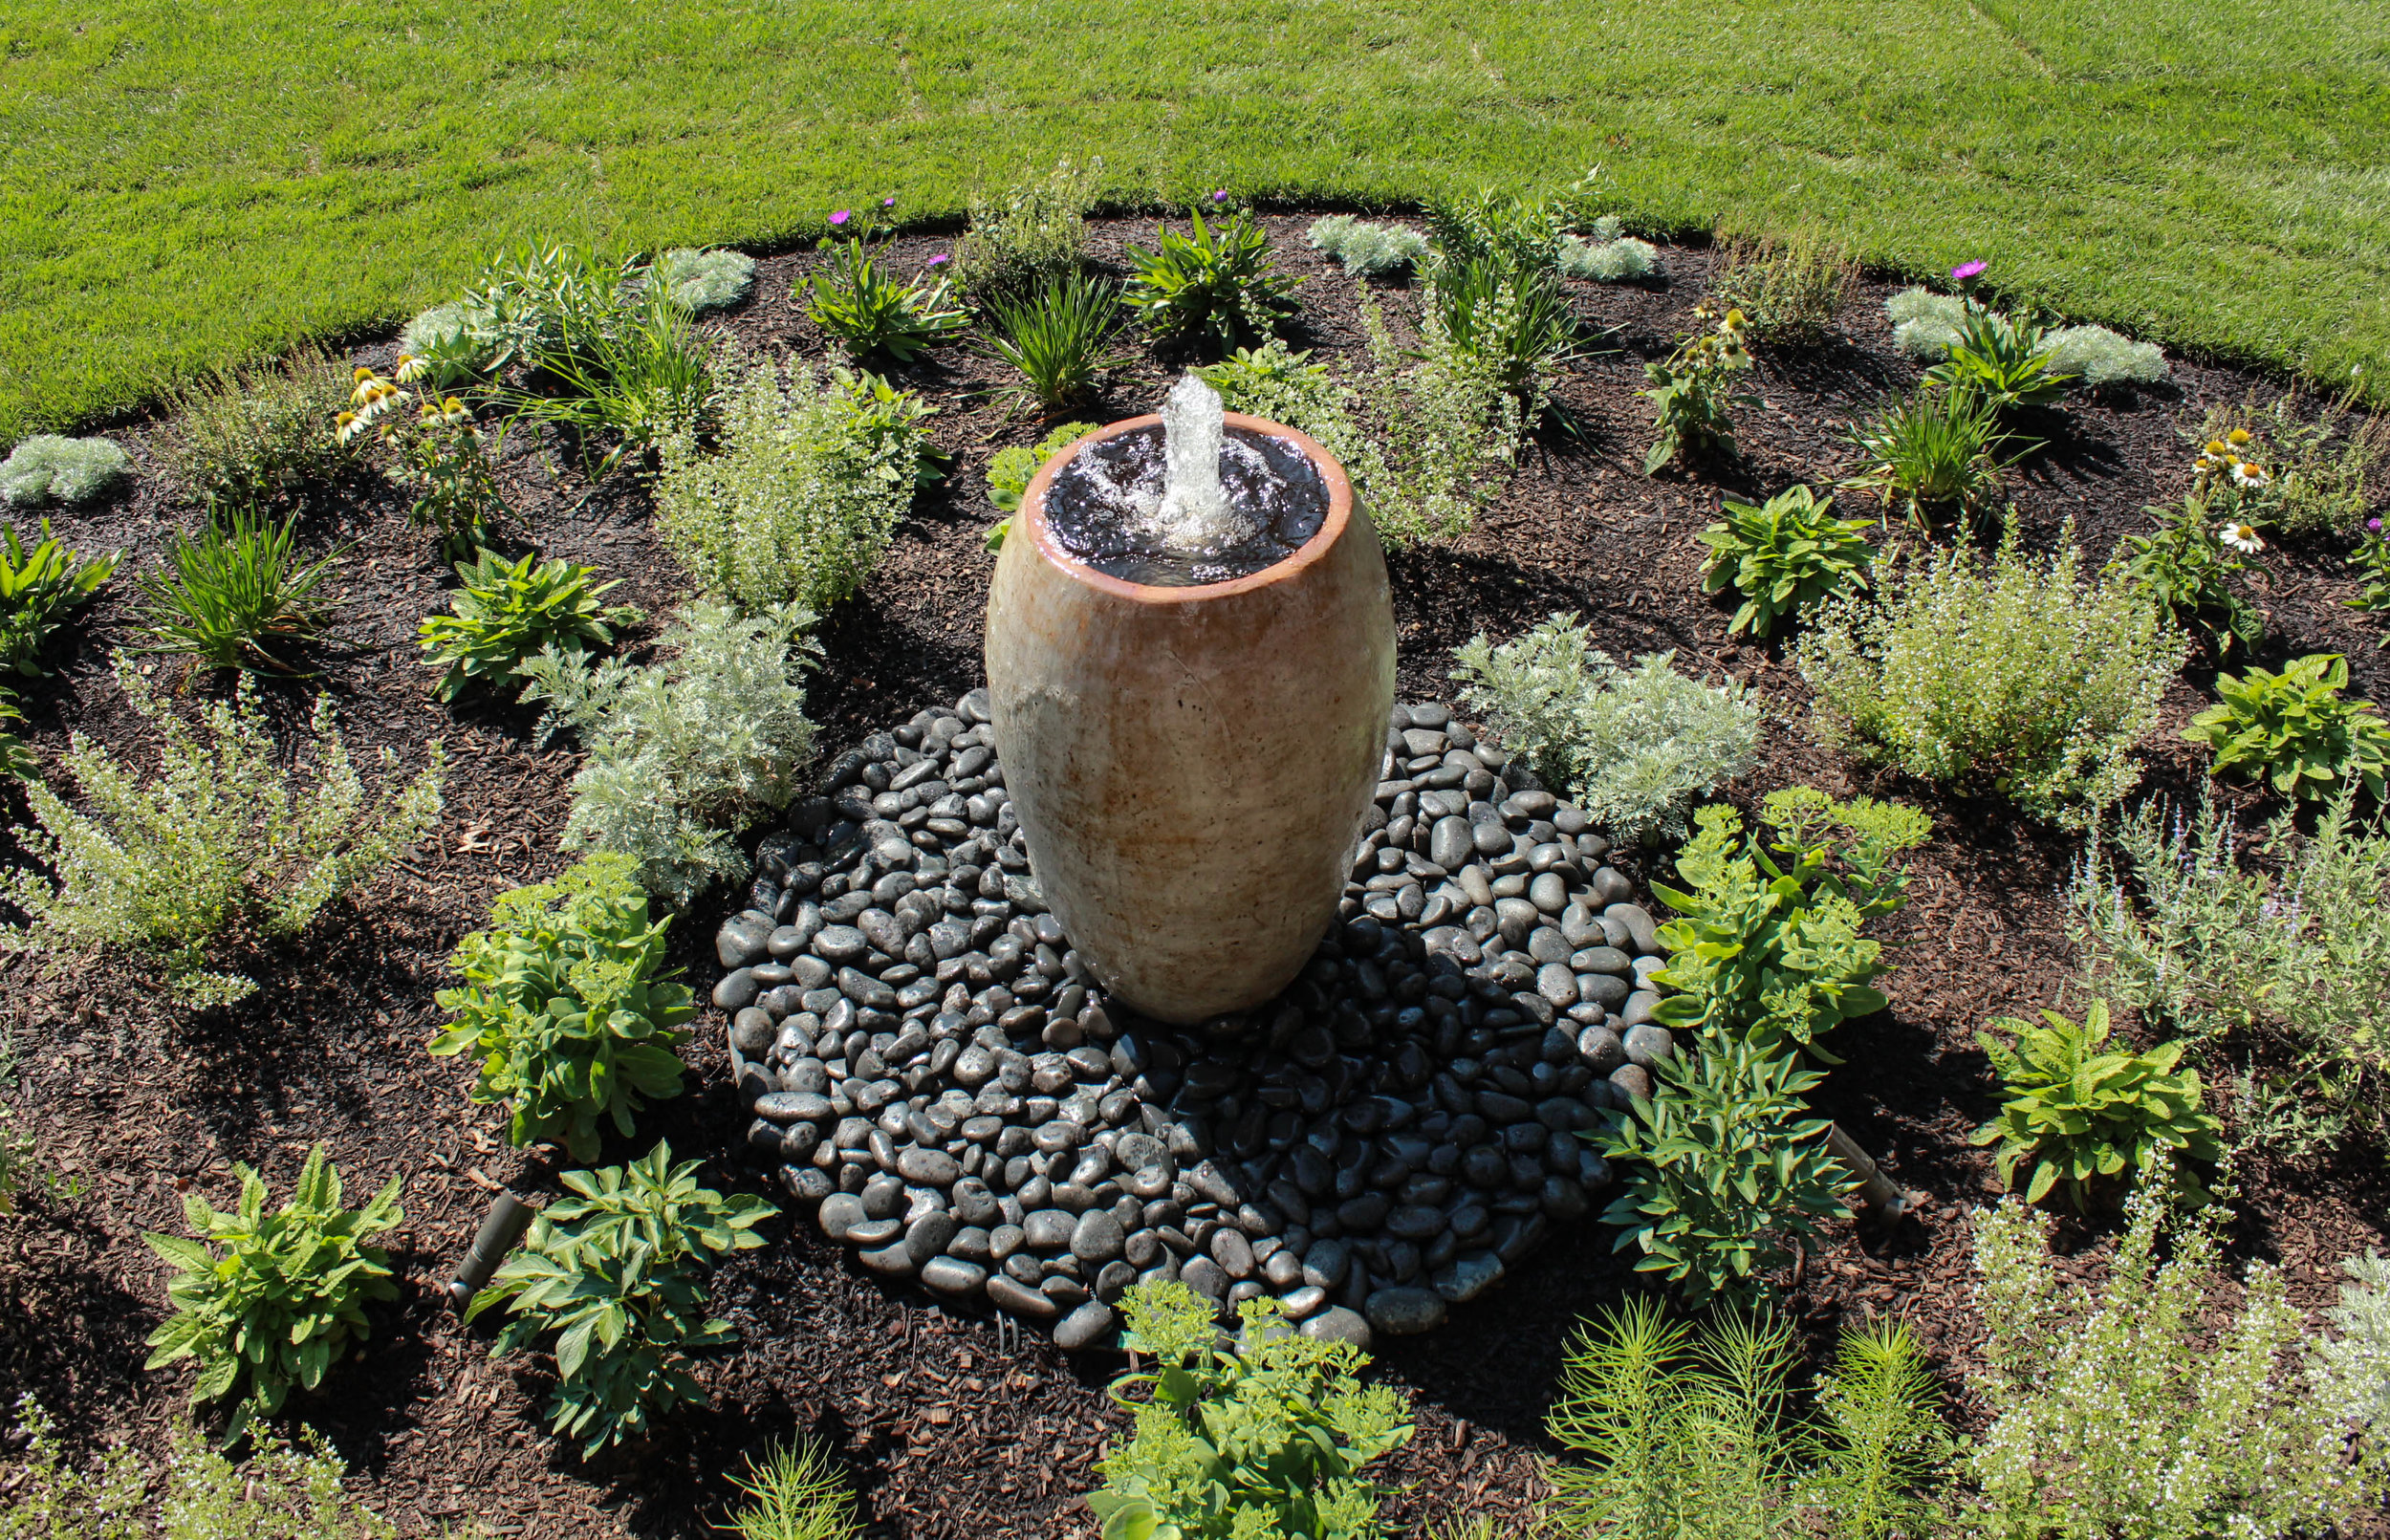 Bubbling Fountain and Plants